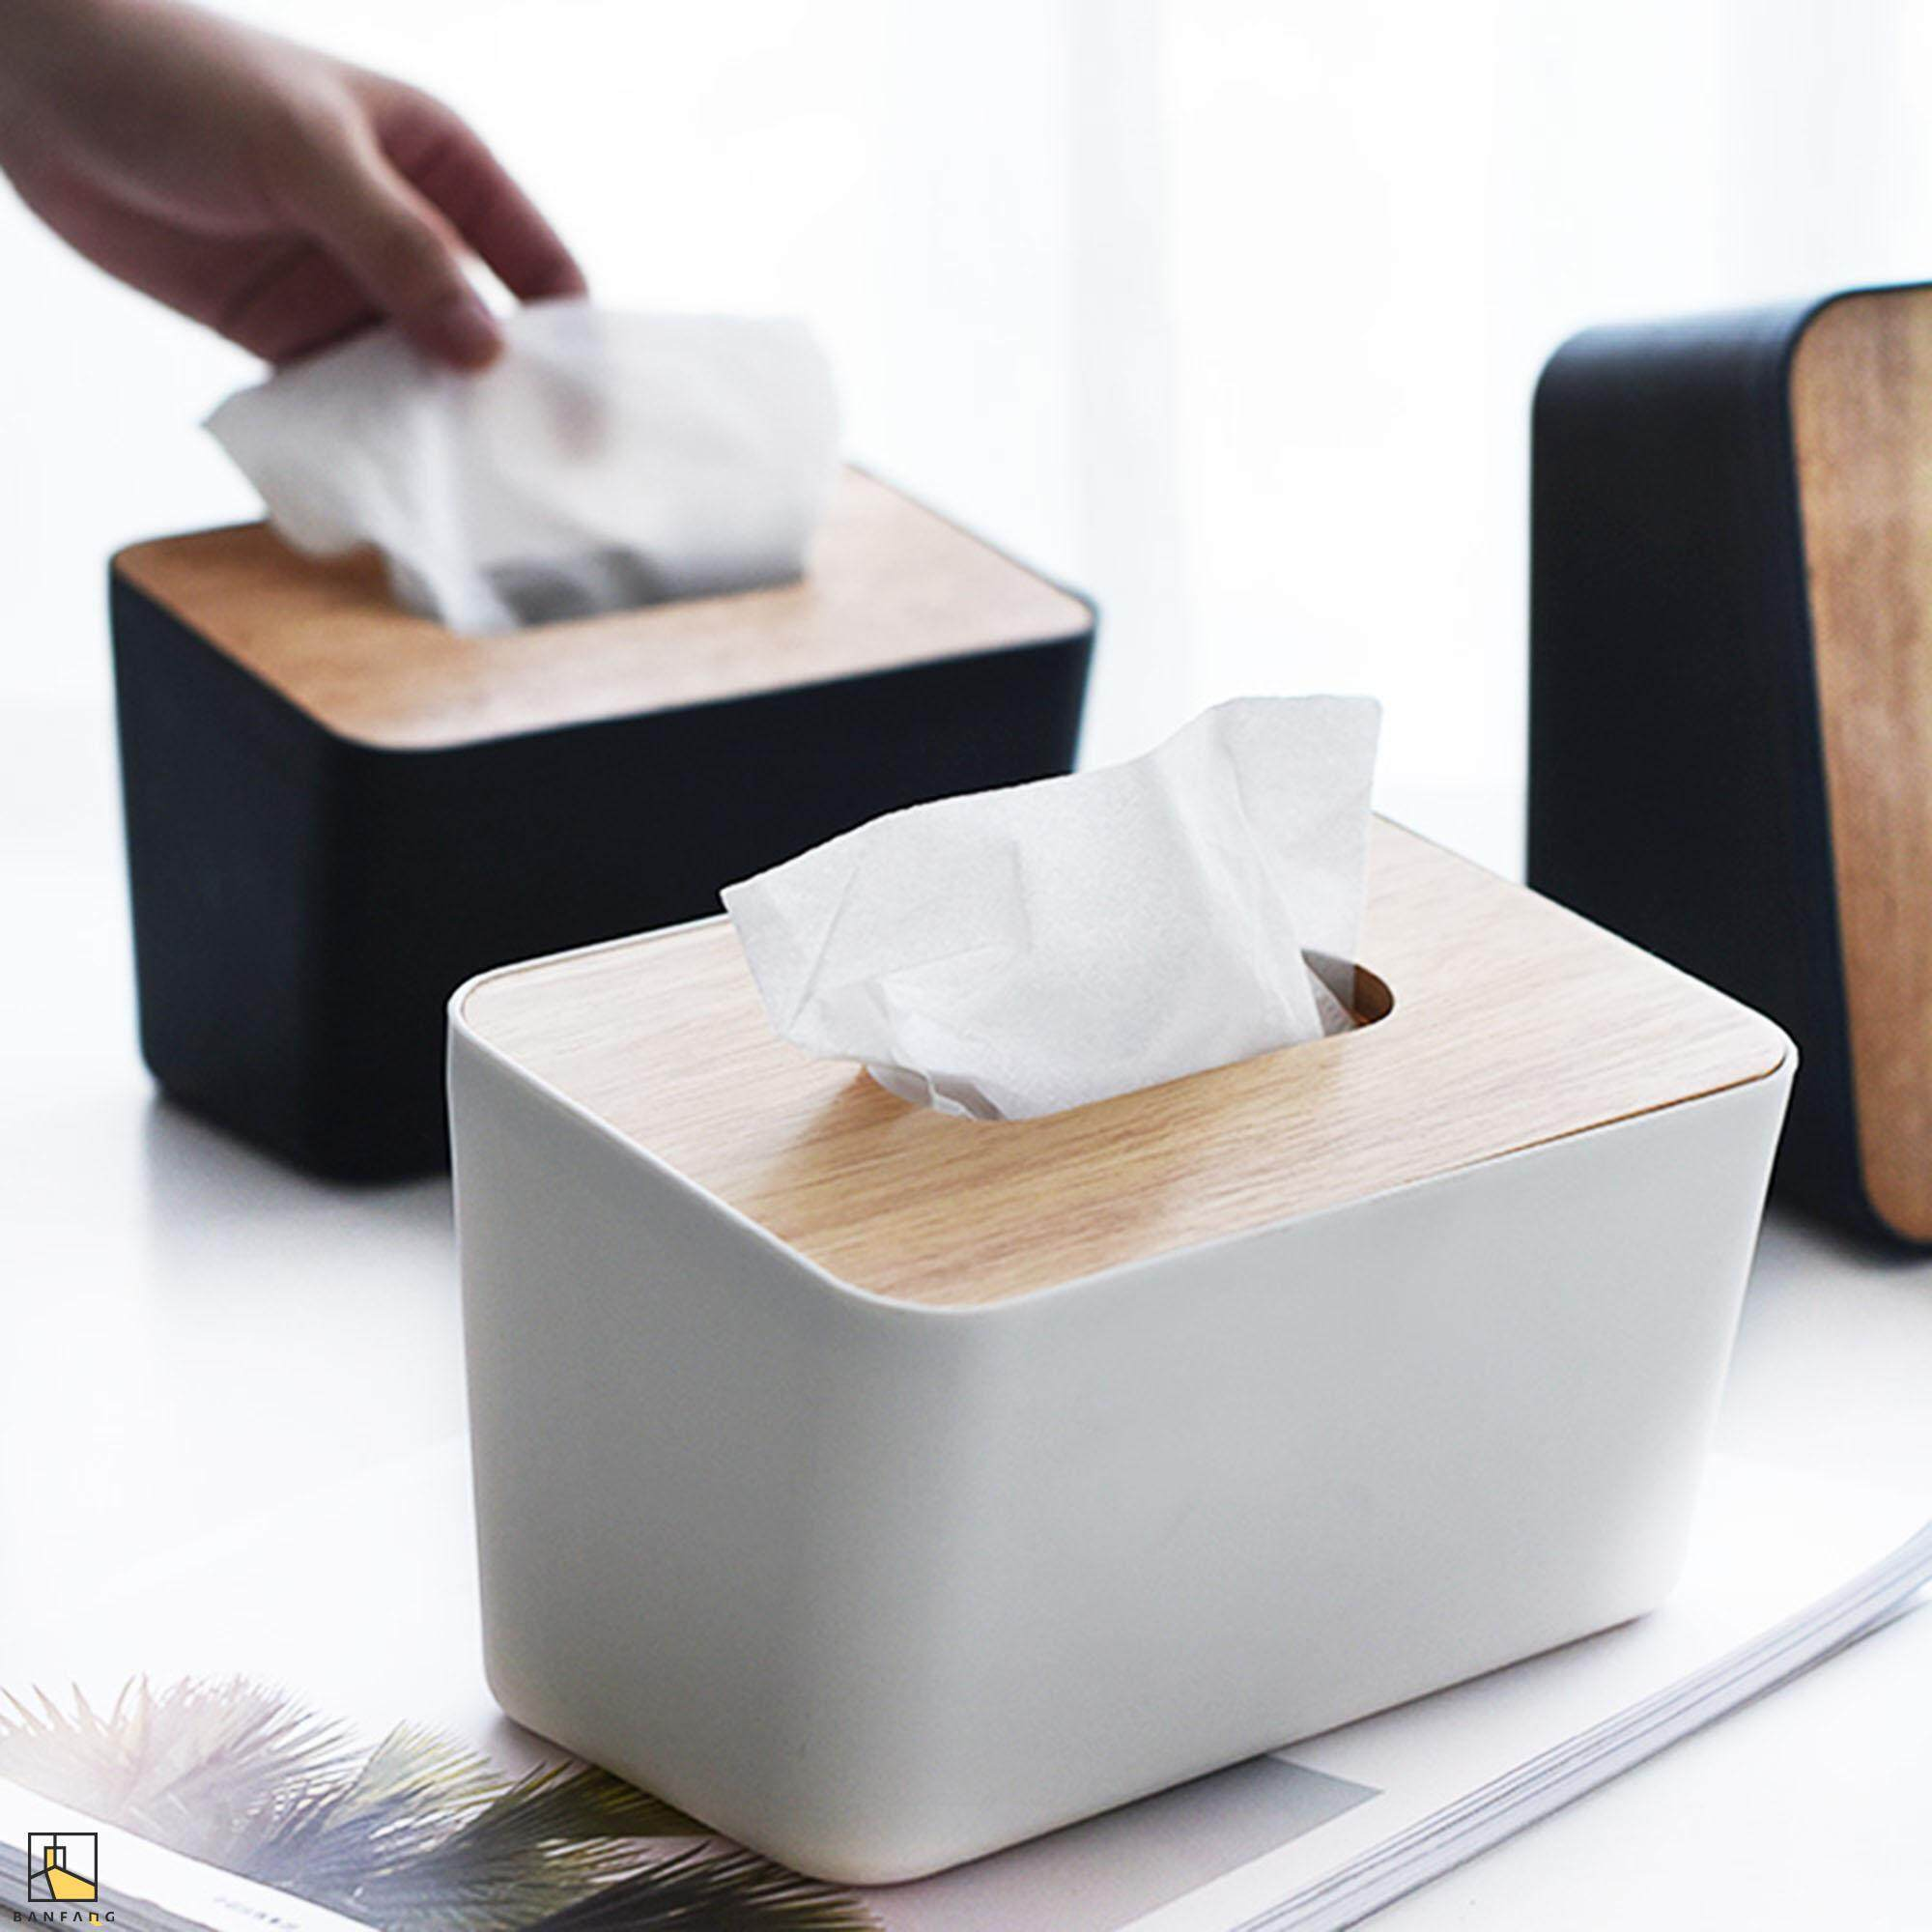 BANFANG Creative vertical pp tissue box rectangular paper box with wooden cover pump box small car sitting room napkin box